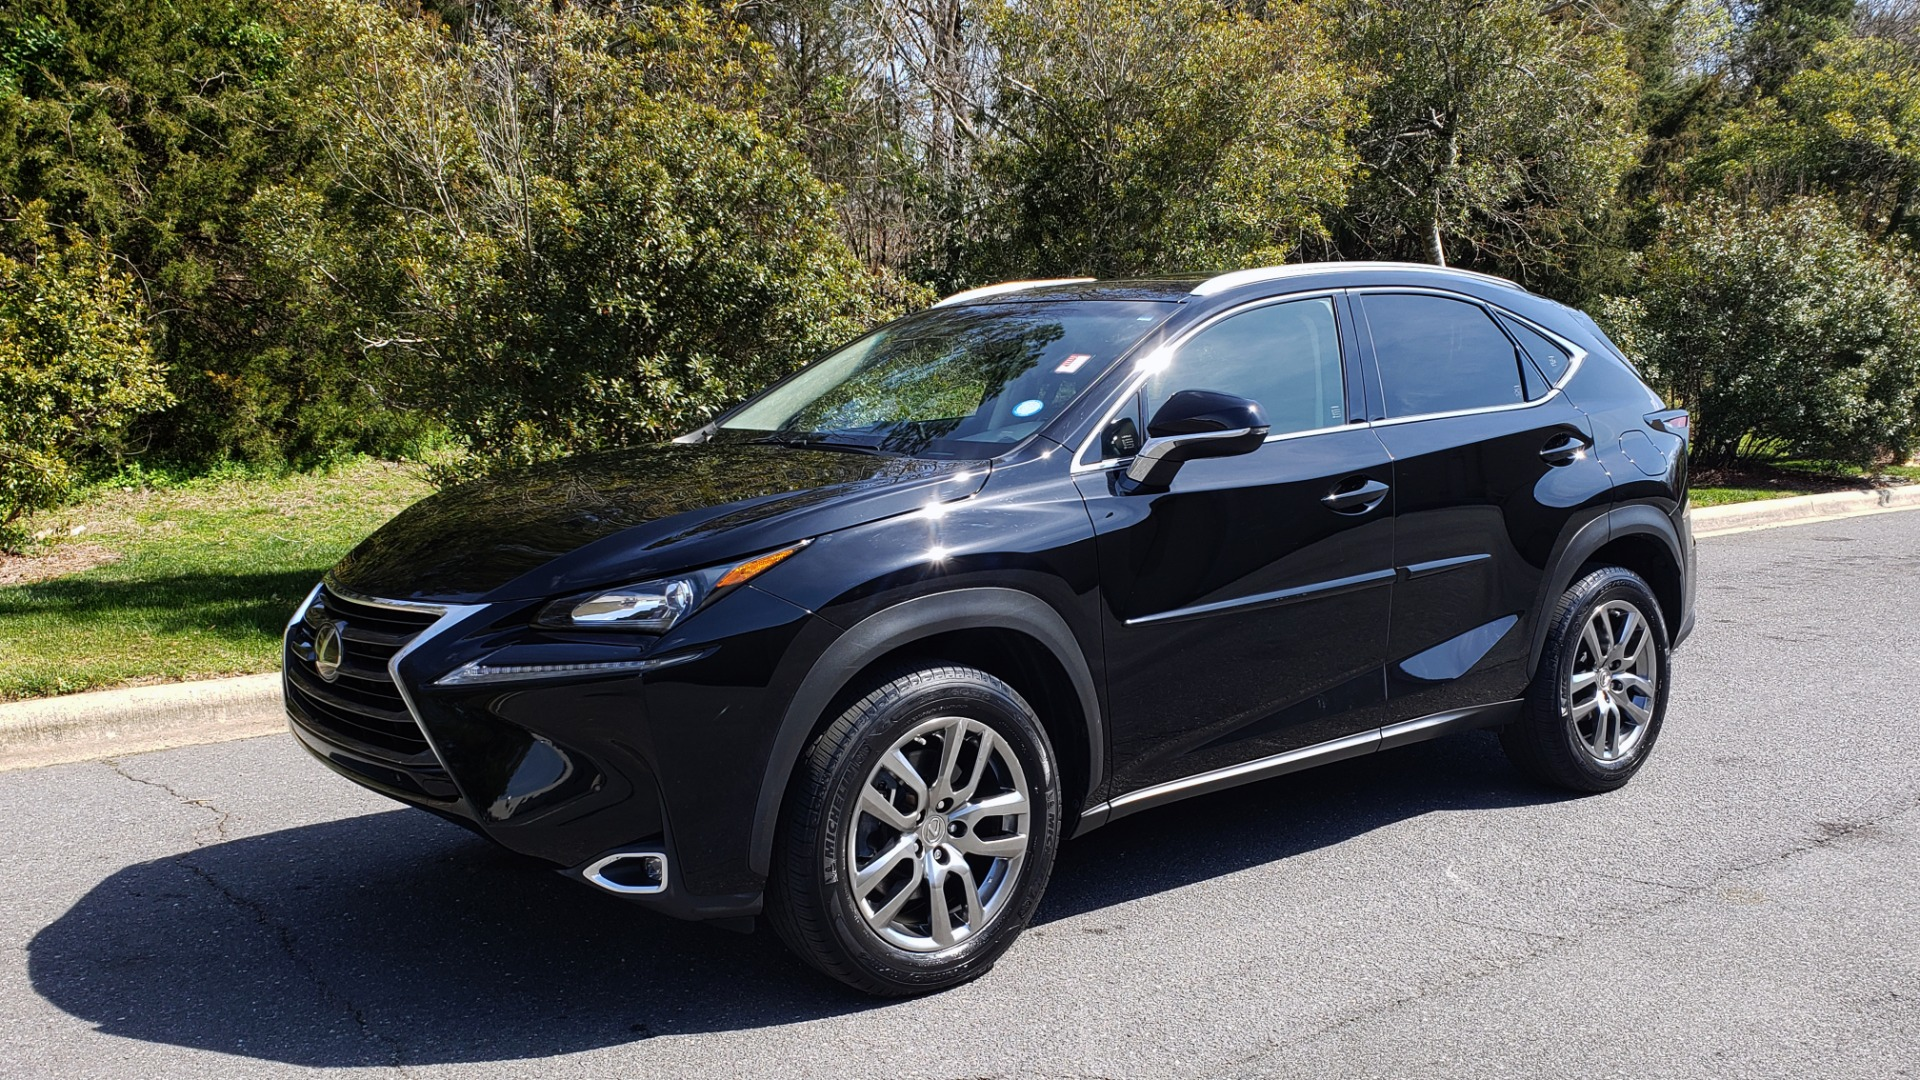 Used 2016 Lexus NX 200T PREM PKG / NAV / SUNROOF / PRE-COLLISION / PARK ASST for sale Sold at Formula Imports in Charlotte NC 28227 1